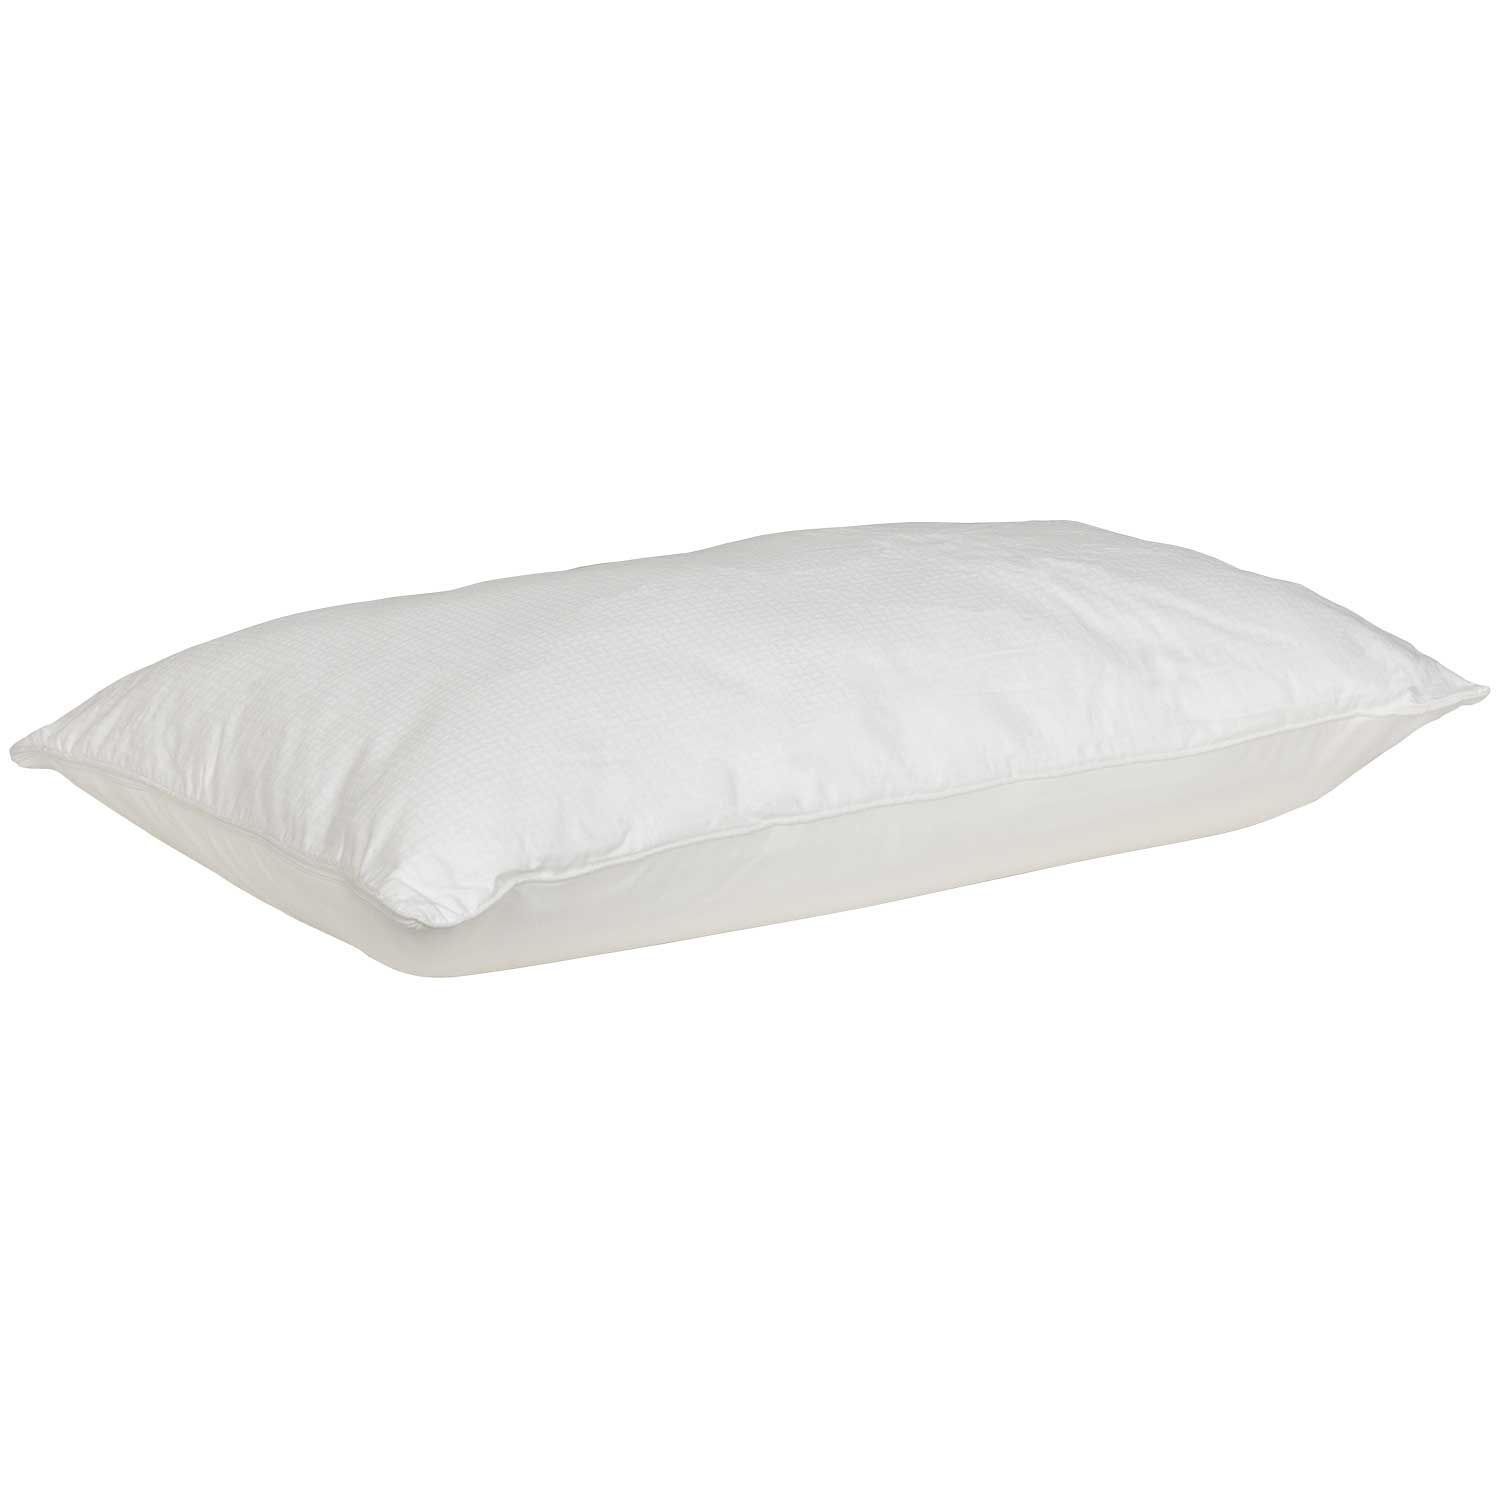 Picture of Sealy Down and Memory Foam Pillow Queen/Standard Size